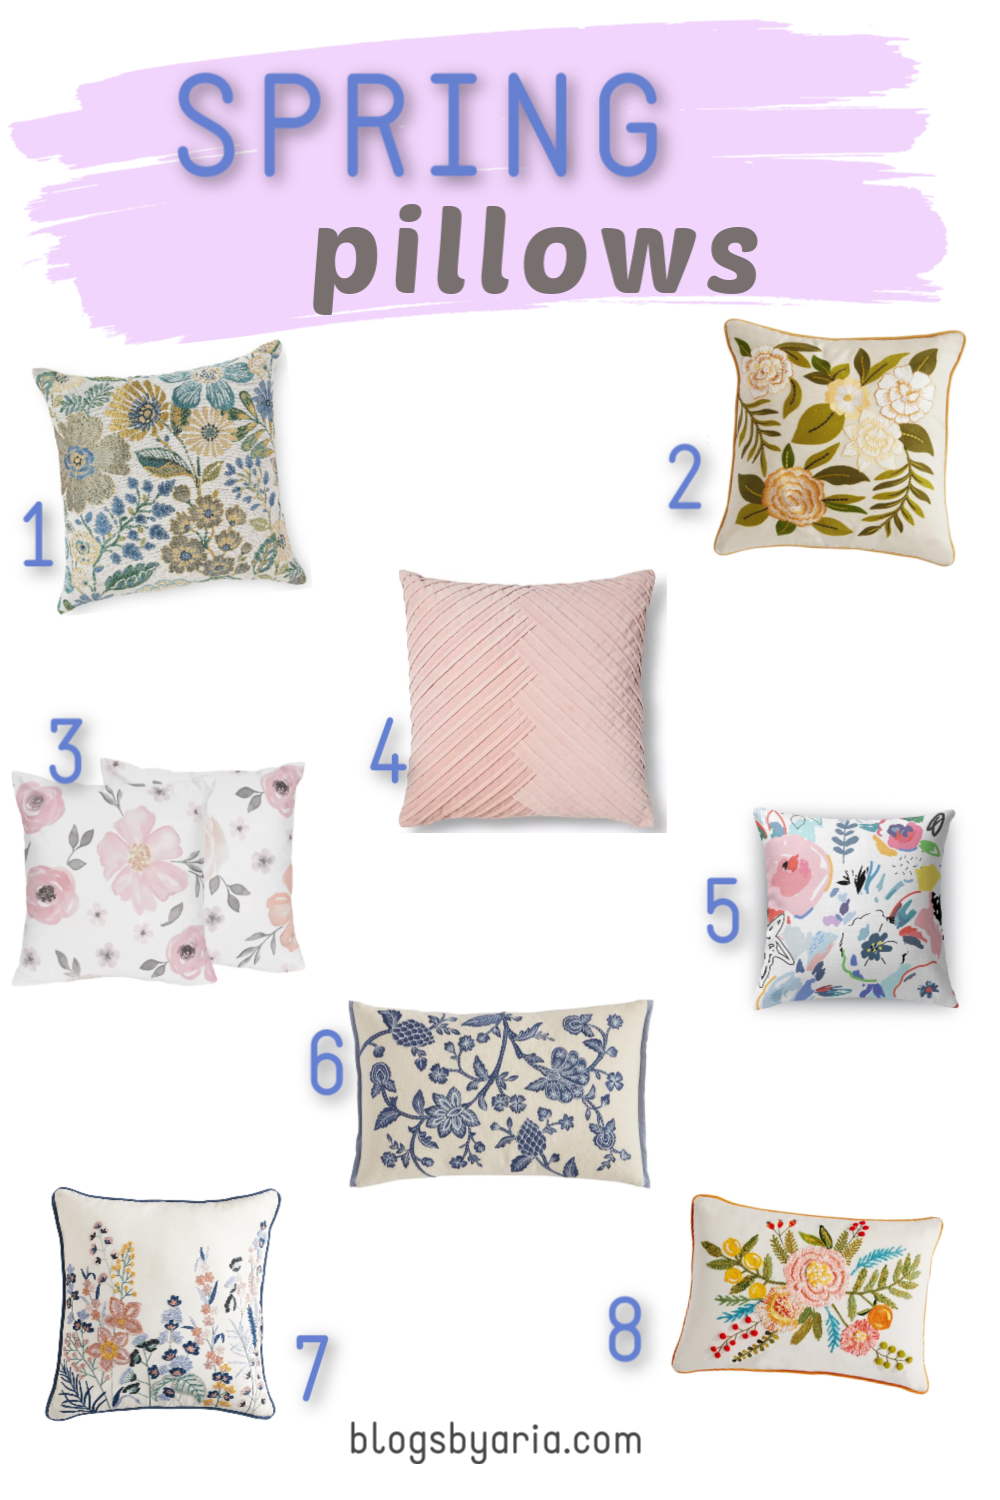 Refresh your home with Spring pillows